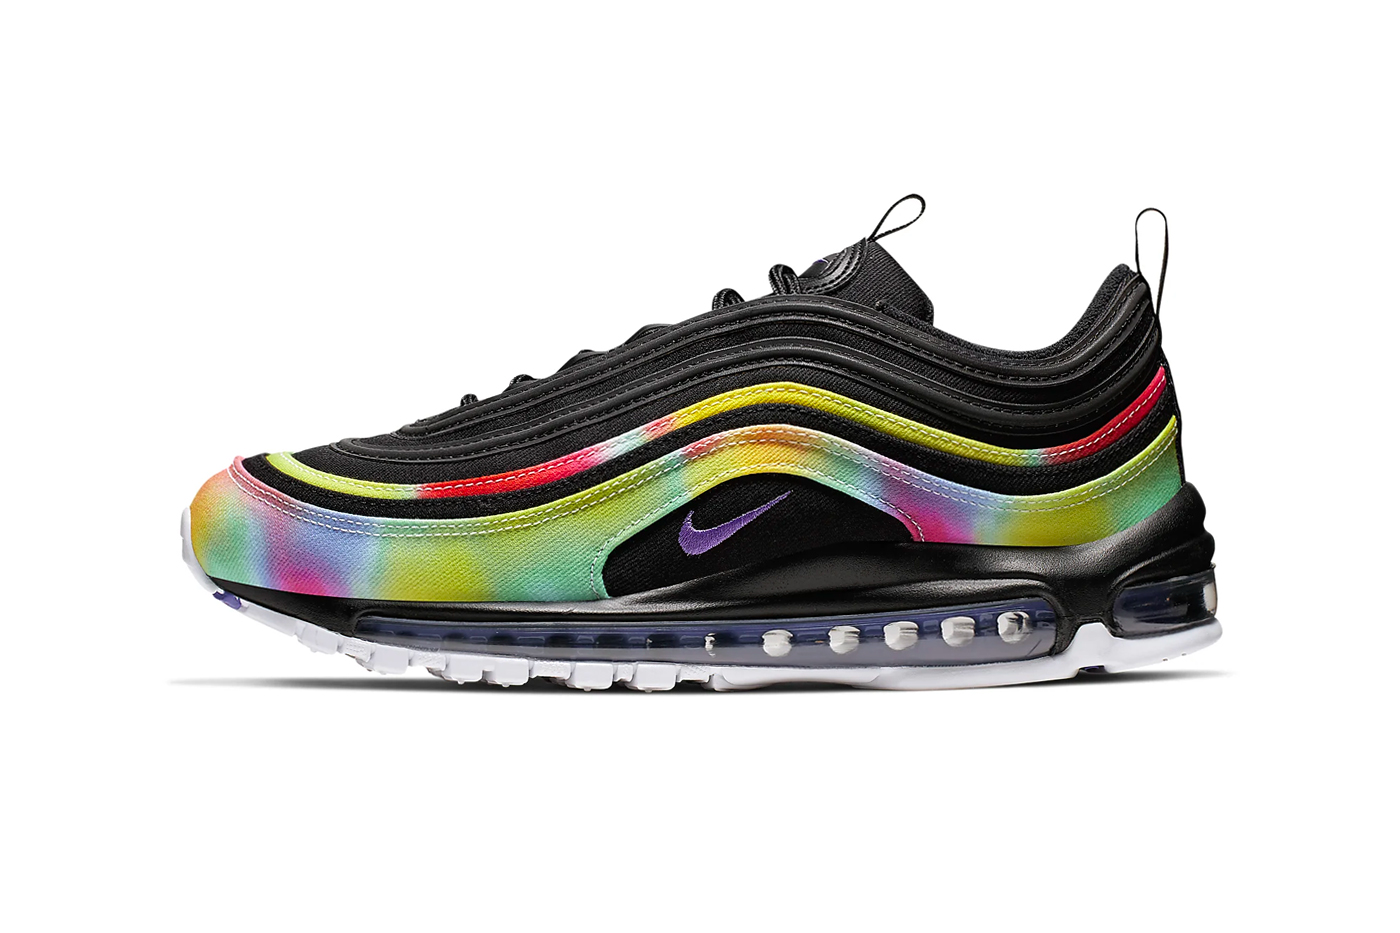 Nike Air Max 97 Black Psychic Purple White Multi Color air sole unit midsole bubbles runner trainers lifestyle sneaker footwear 3m reflective